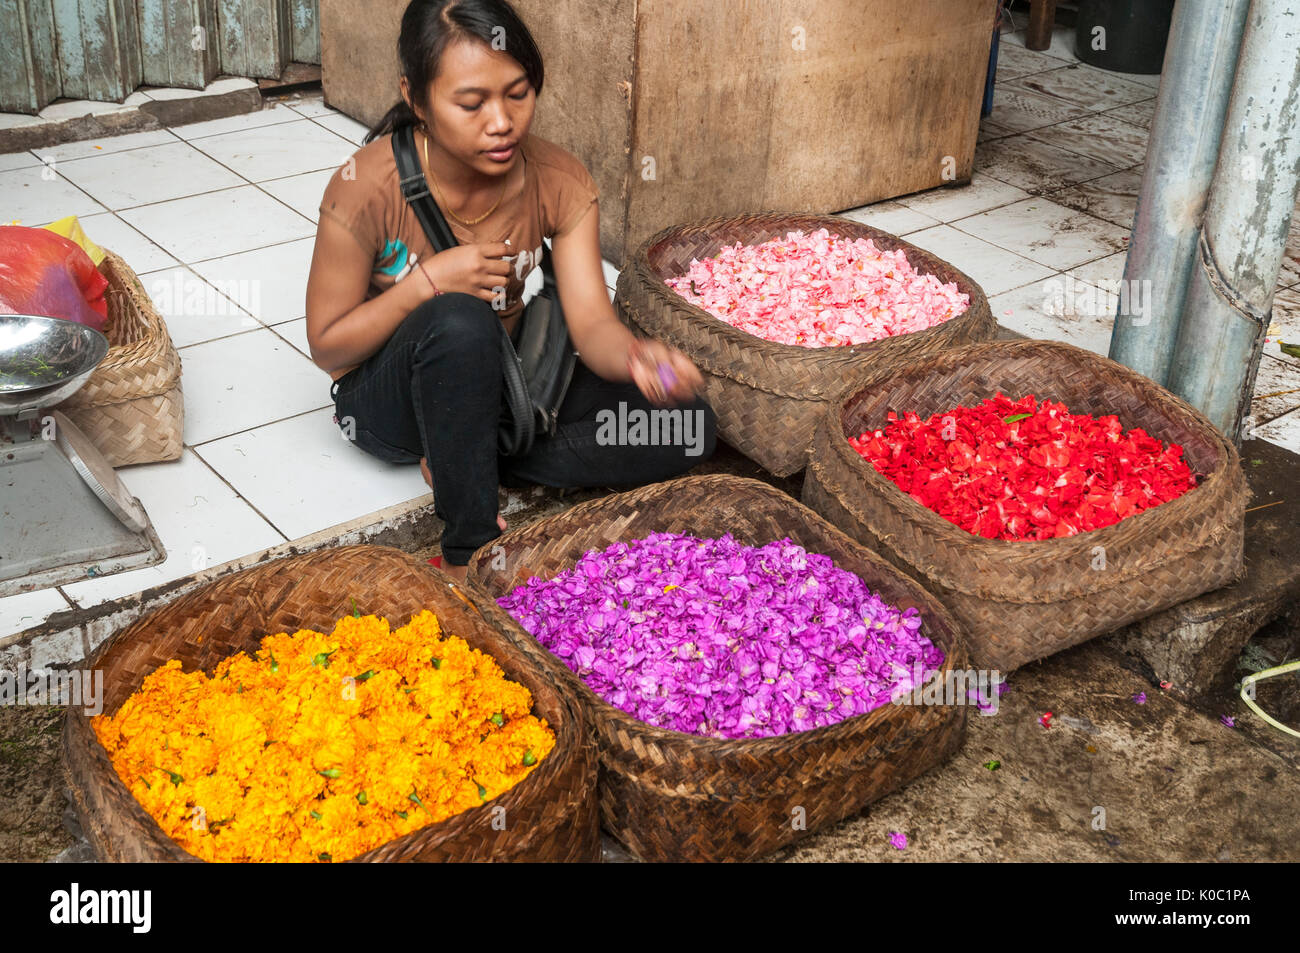 Woman selling flowers for decorating religious offerings, at the market in Ubud, Bali, Indonesia - Stock Image